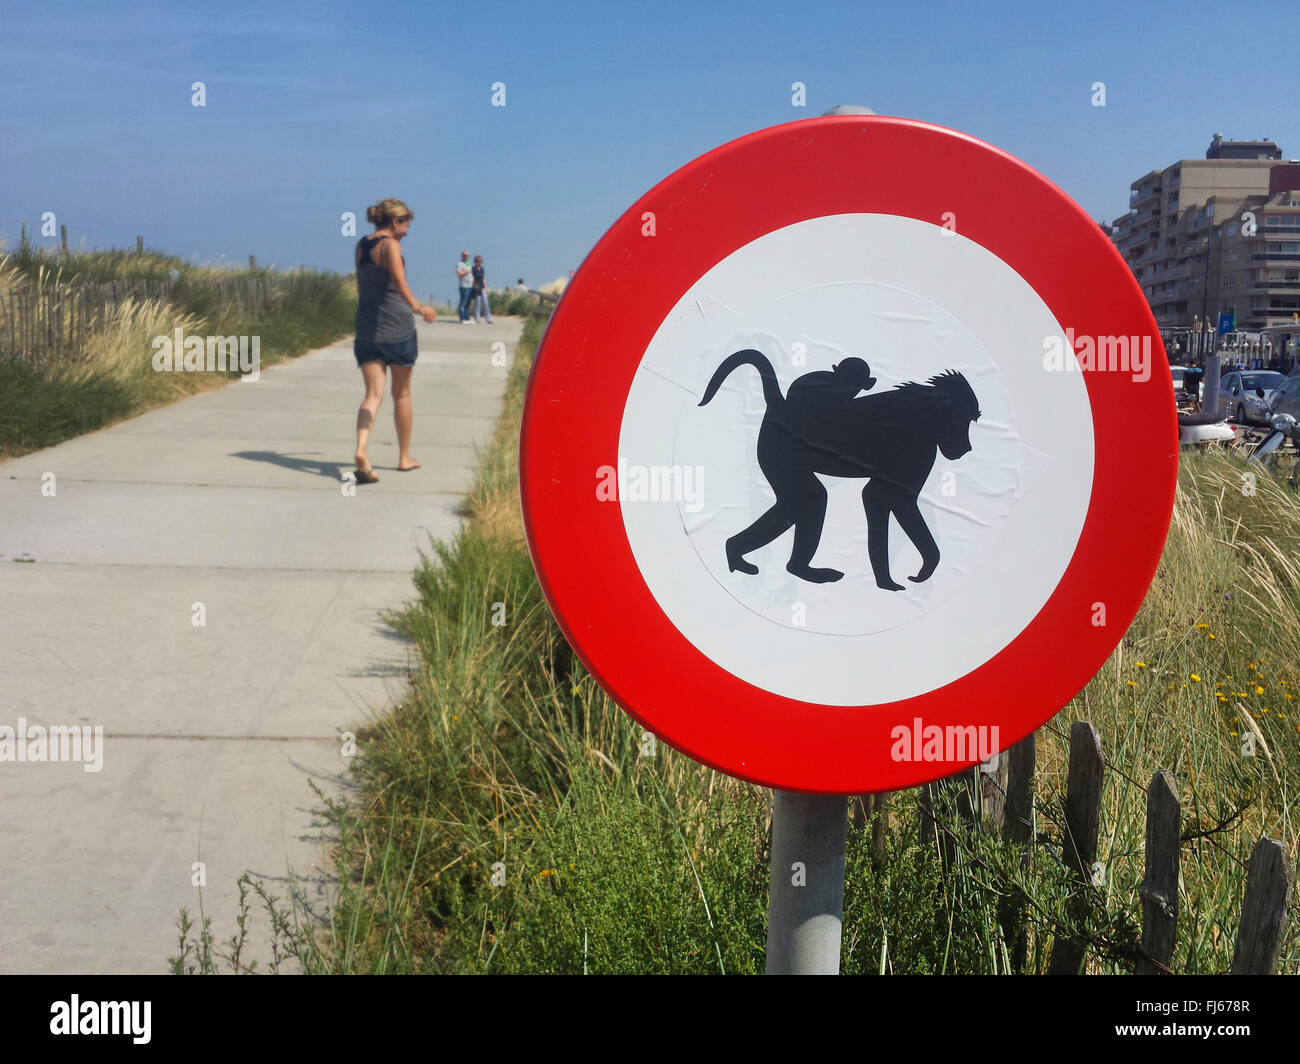 'no admission for apes' prohibition sign at path to the beach, Netherlands, Nordwijk - Stock Image